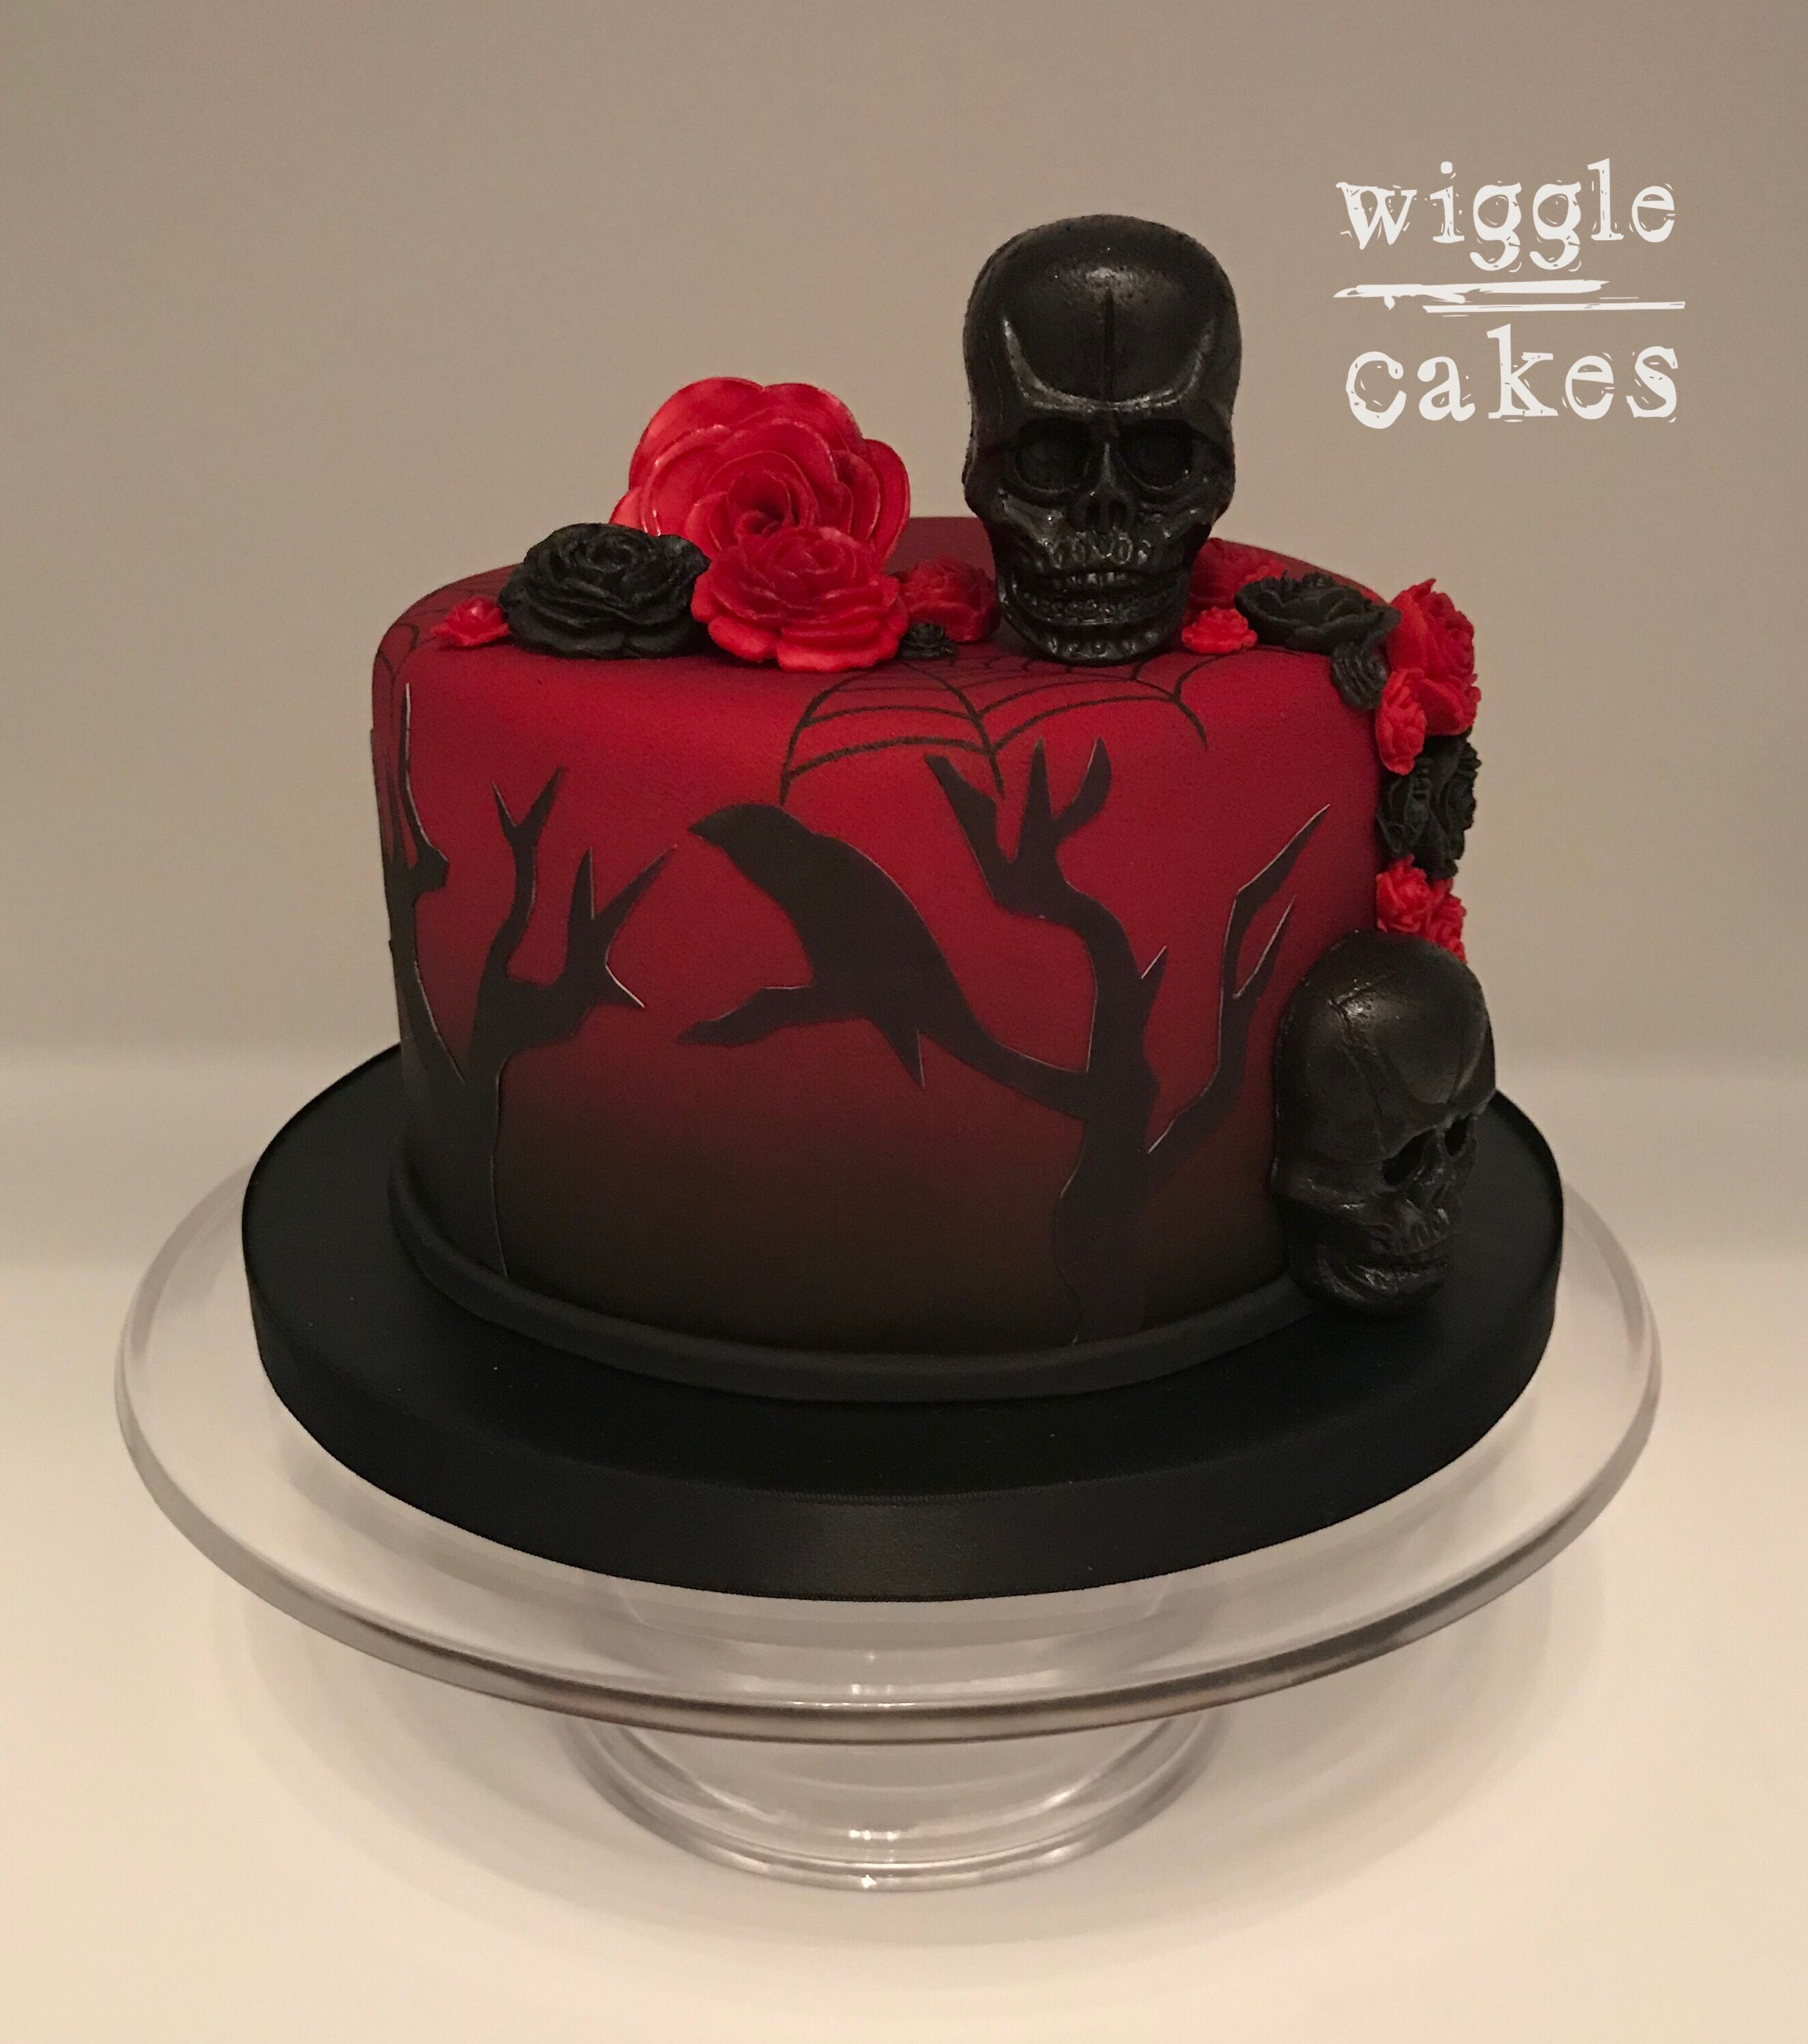 Strange Red And Black Gothic Cake With Ravens Skulls And Roses Gothic Birthday Cards Printable Benkemecafe Filternl